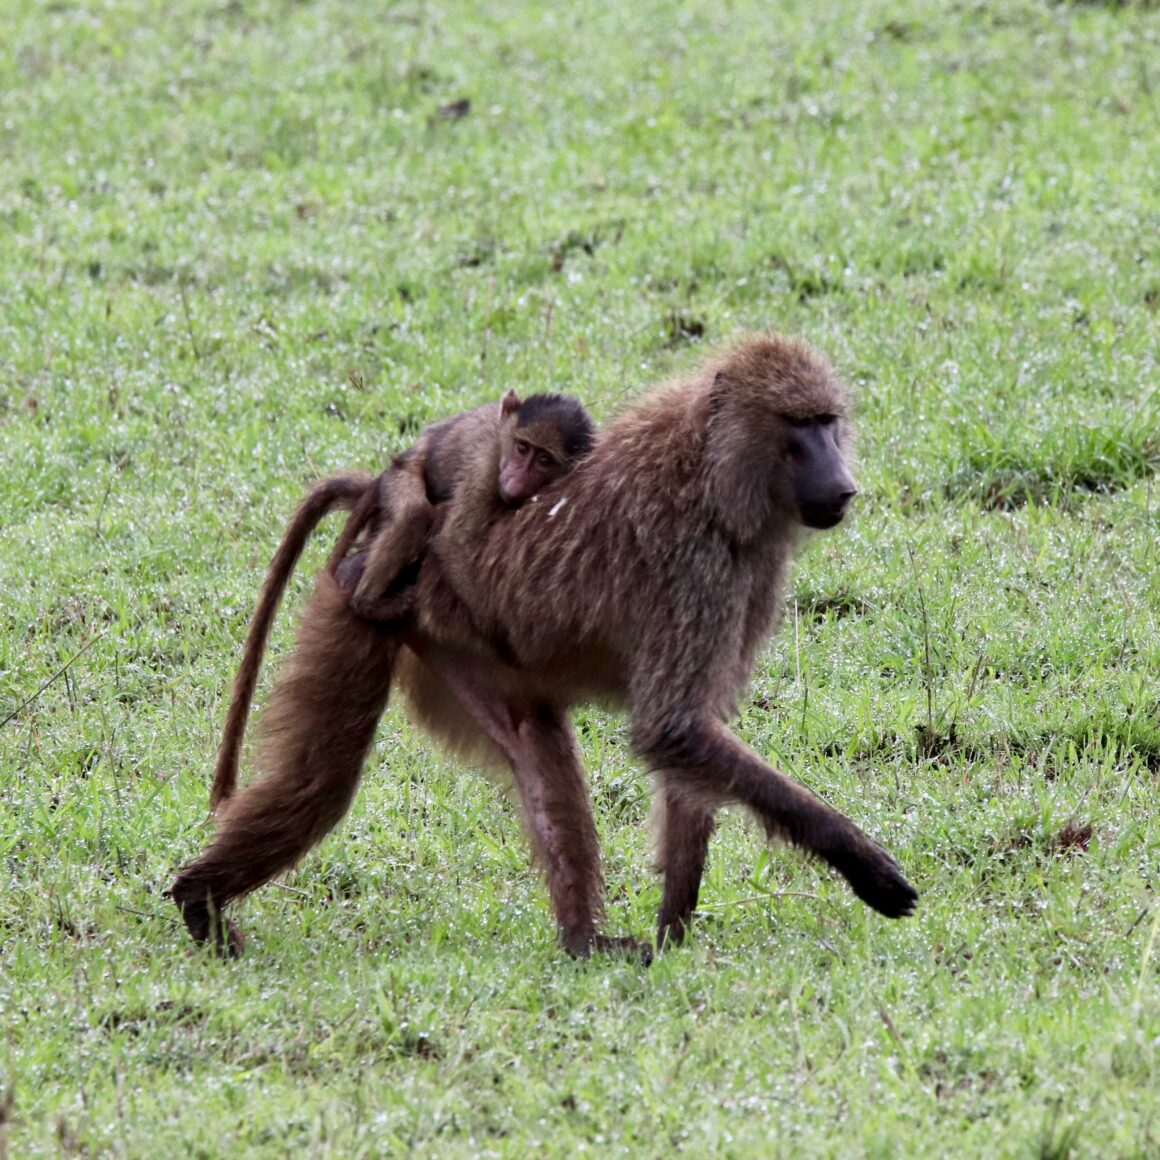 Female baboon carrying her young in the Serengeti National Park